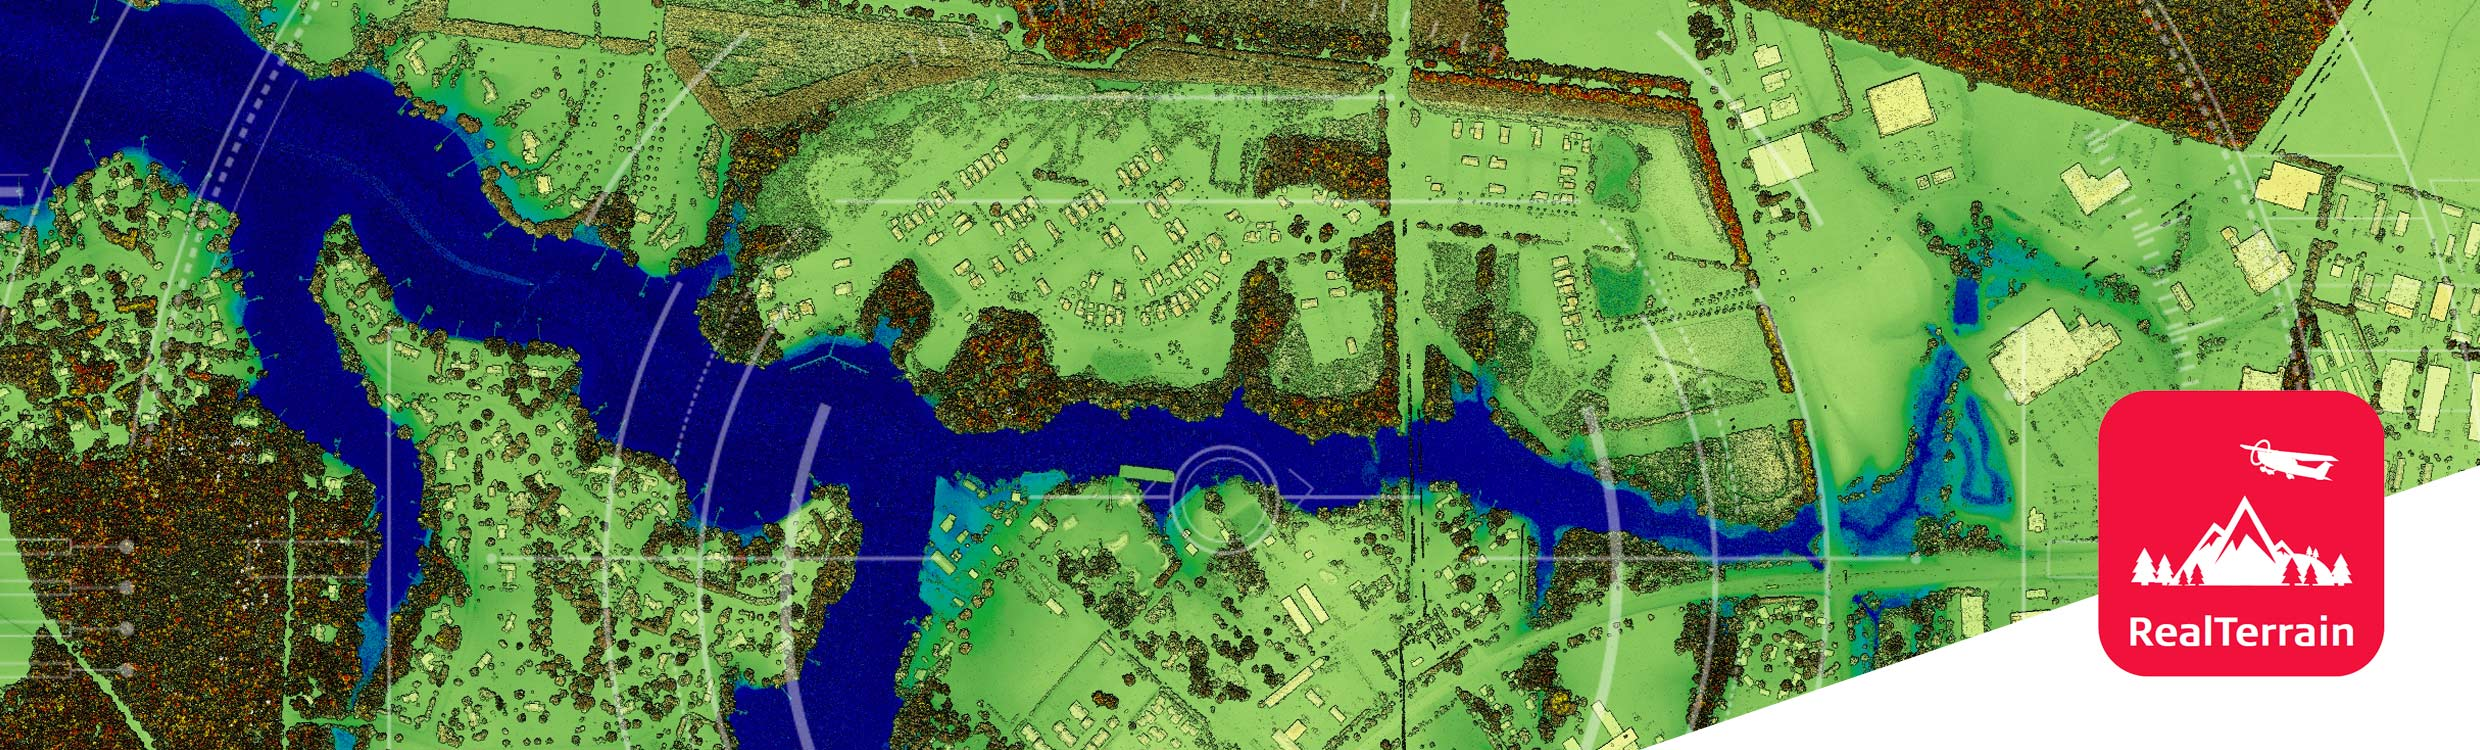 Leica RealTerrain Large Area LiDAR Mapping Solution